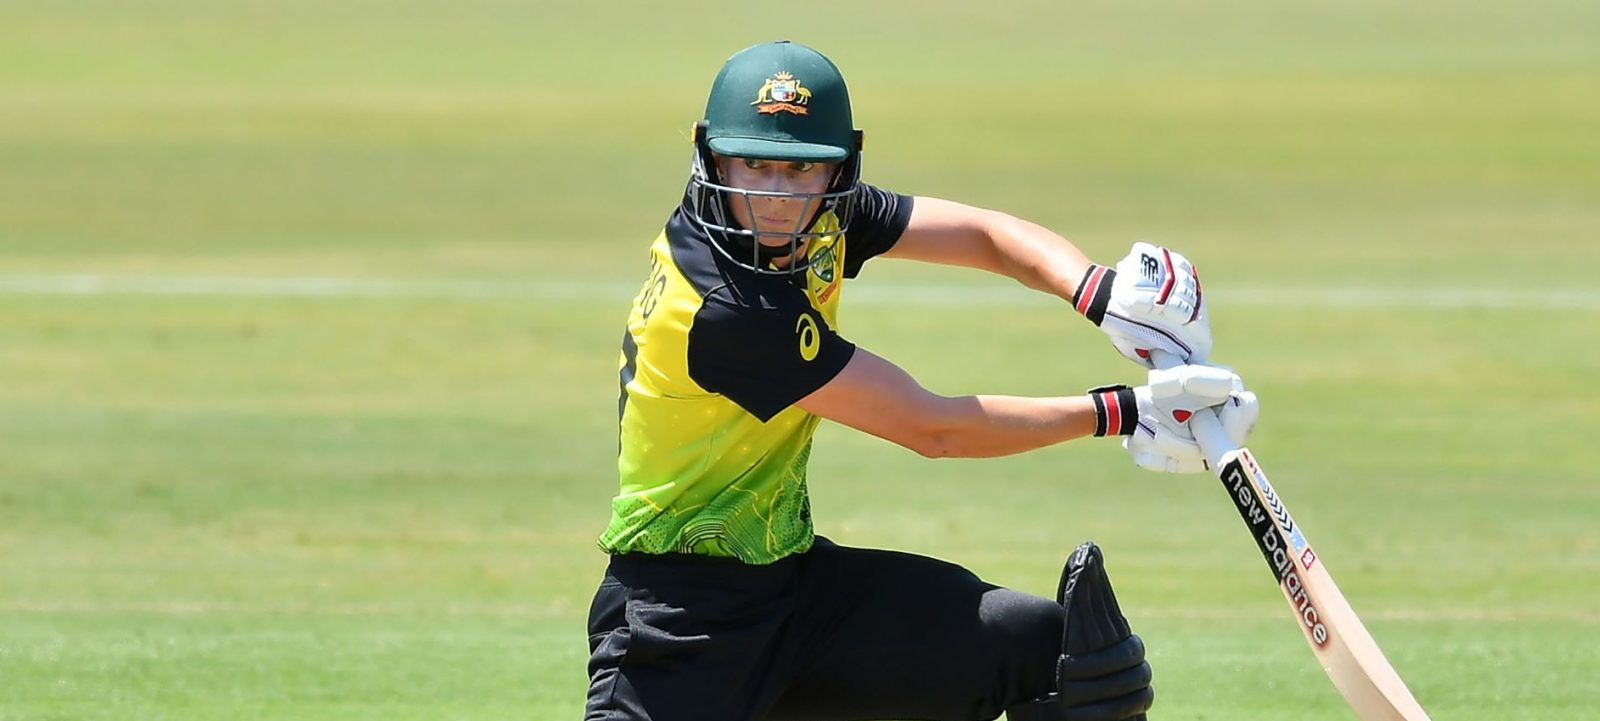 Meg Lanning in action. © Getty Images